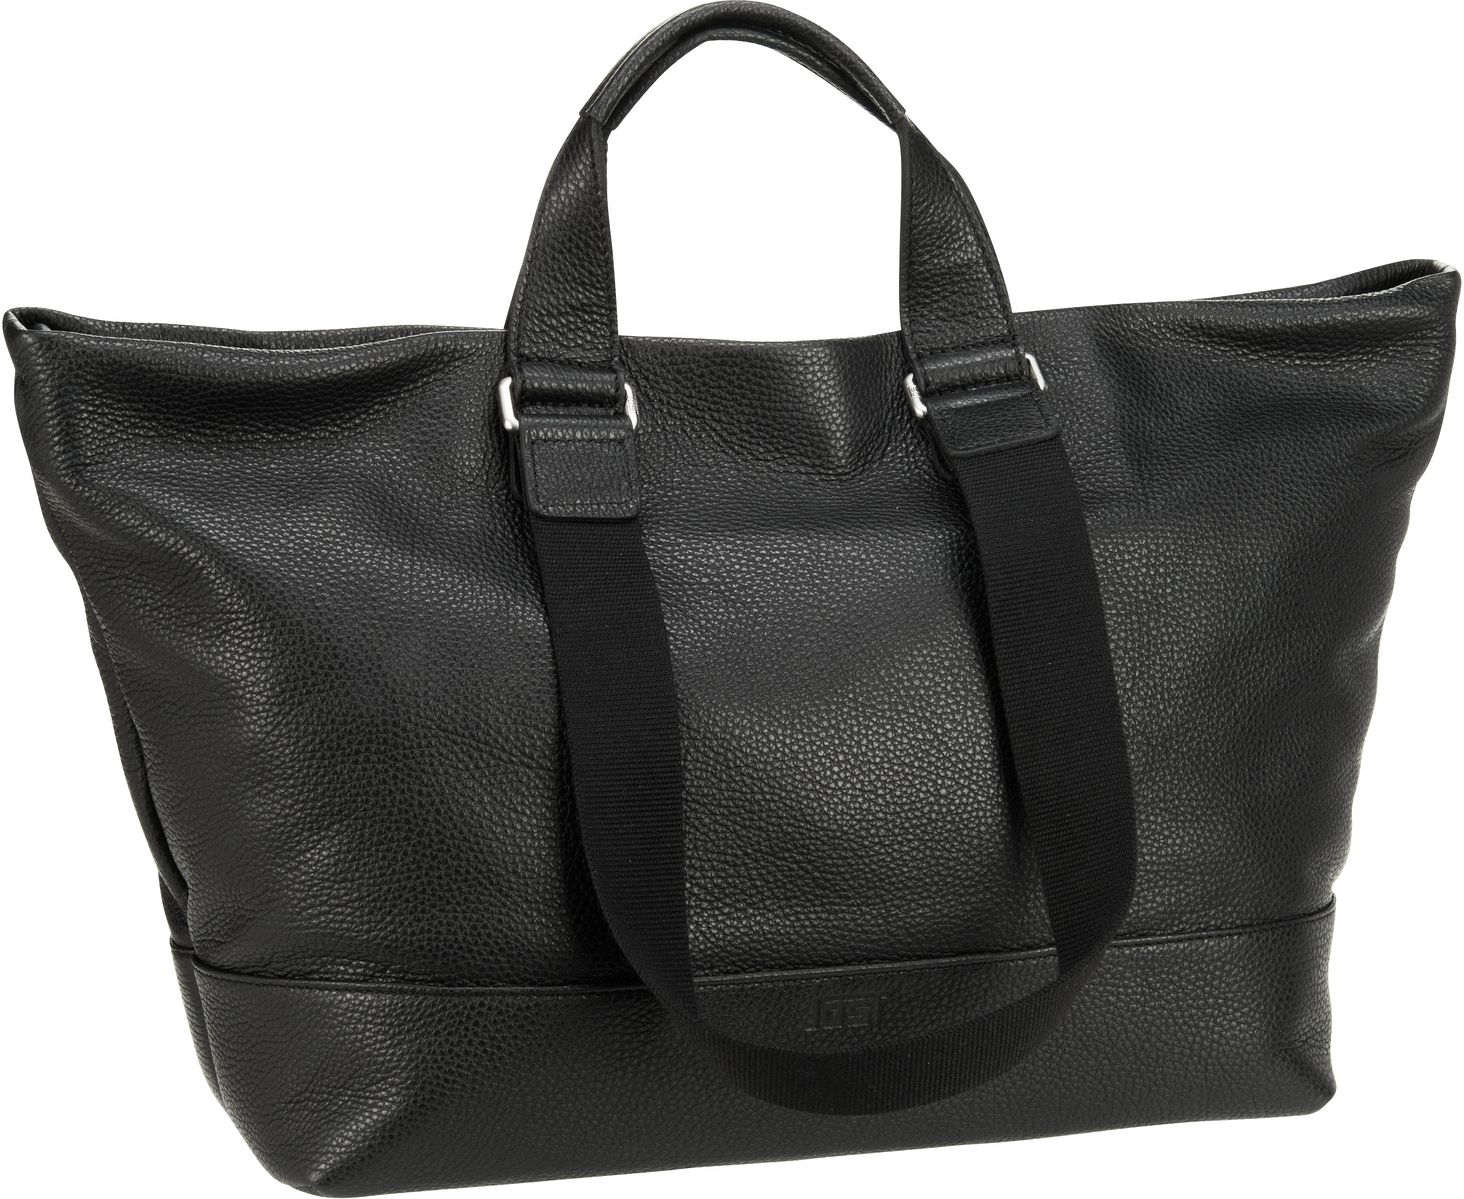 Handtasche Vika 1841 Shopper Black